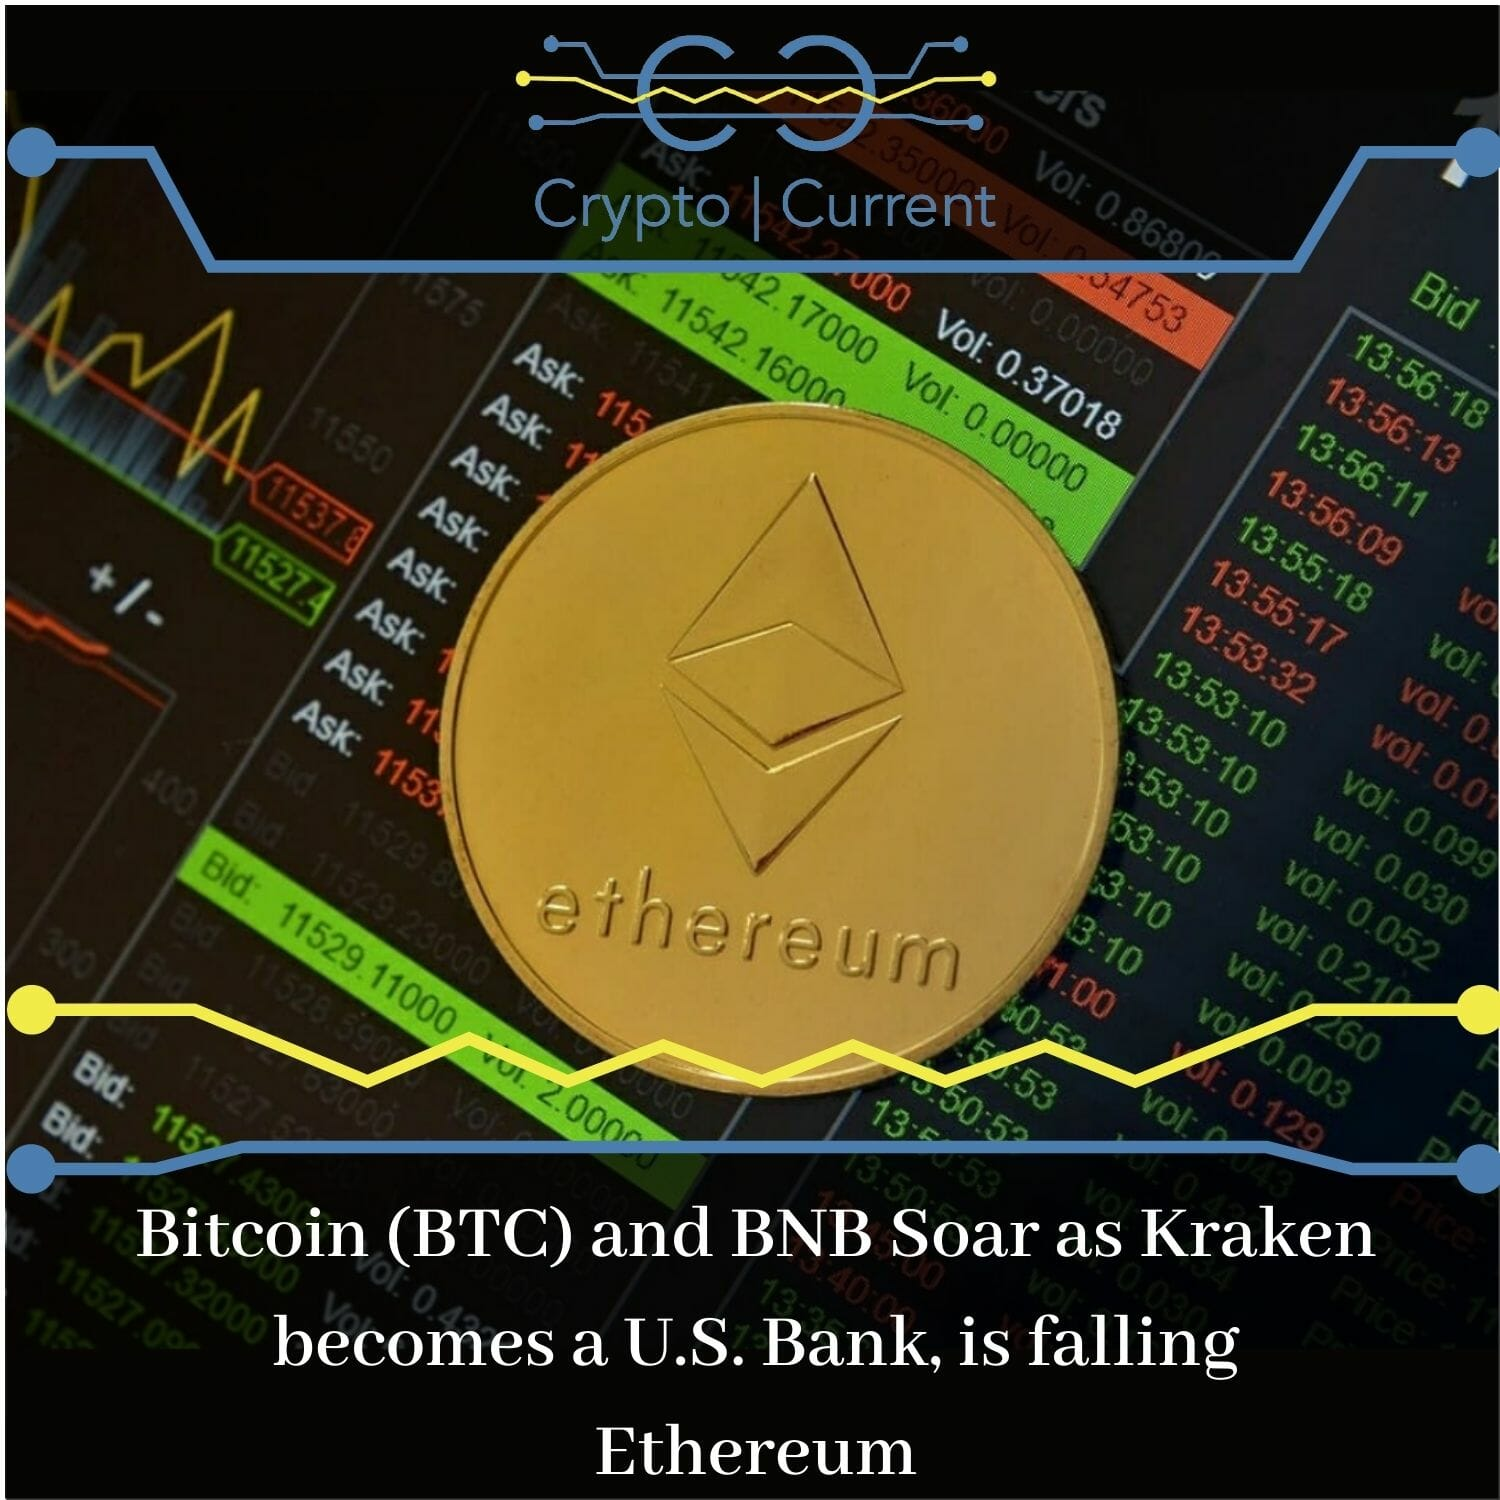 Bitcoin (BTC) and BNB Soar as Kraken becomes a U.S. Bank, is falling Ethereum